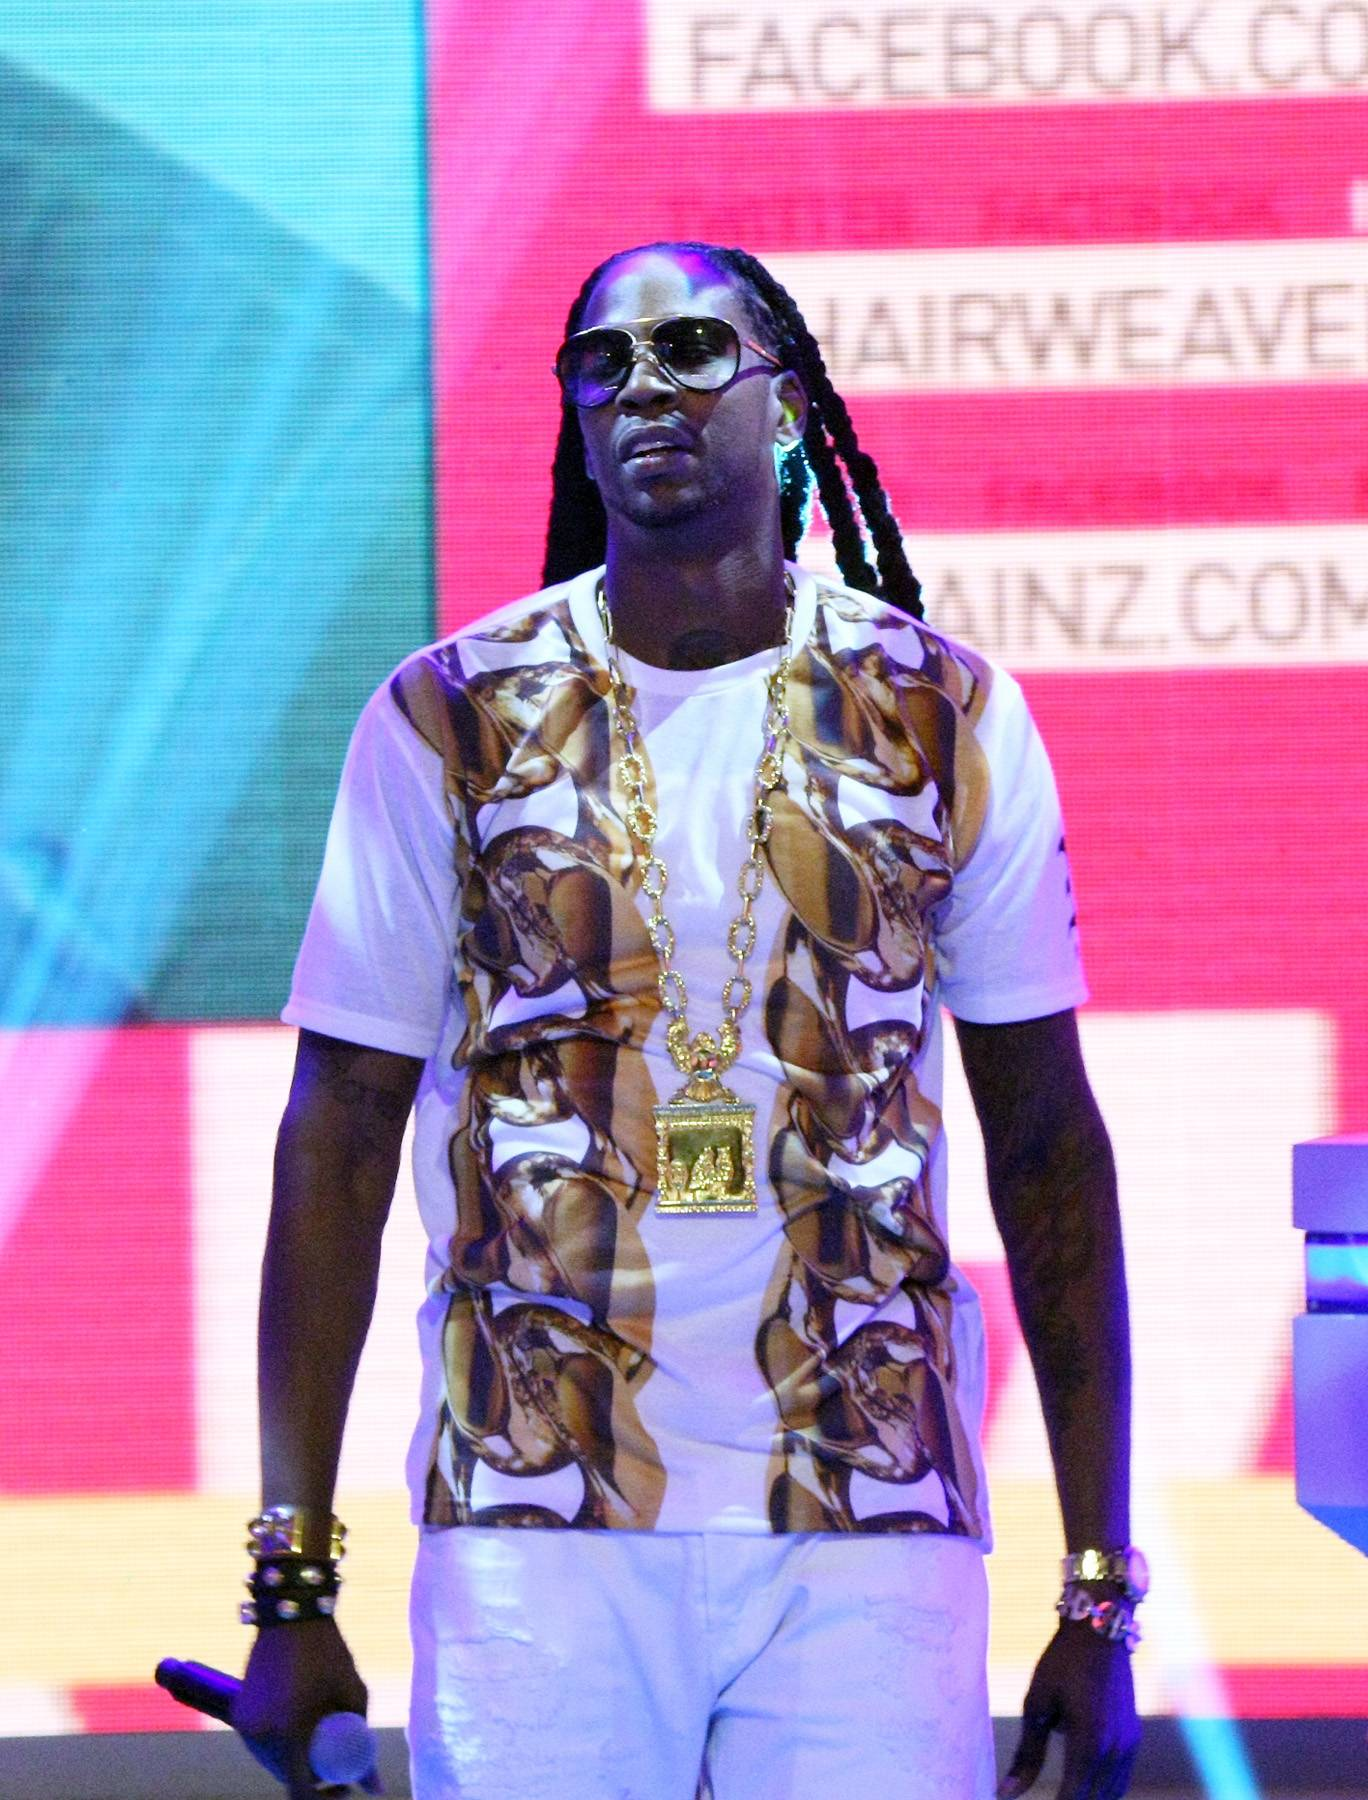 He Enters - Recording artist 2 Chainz performs at 106 & Park September 9, 2013, in New York City.(Photo: Bennett Raglin/BET/Getty Images for BET)